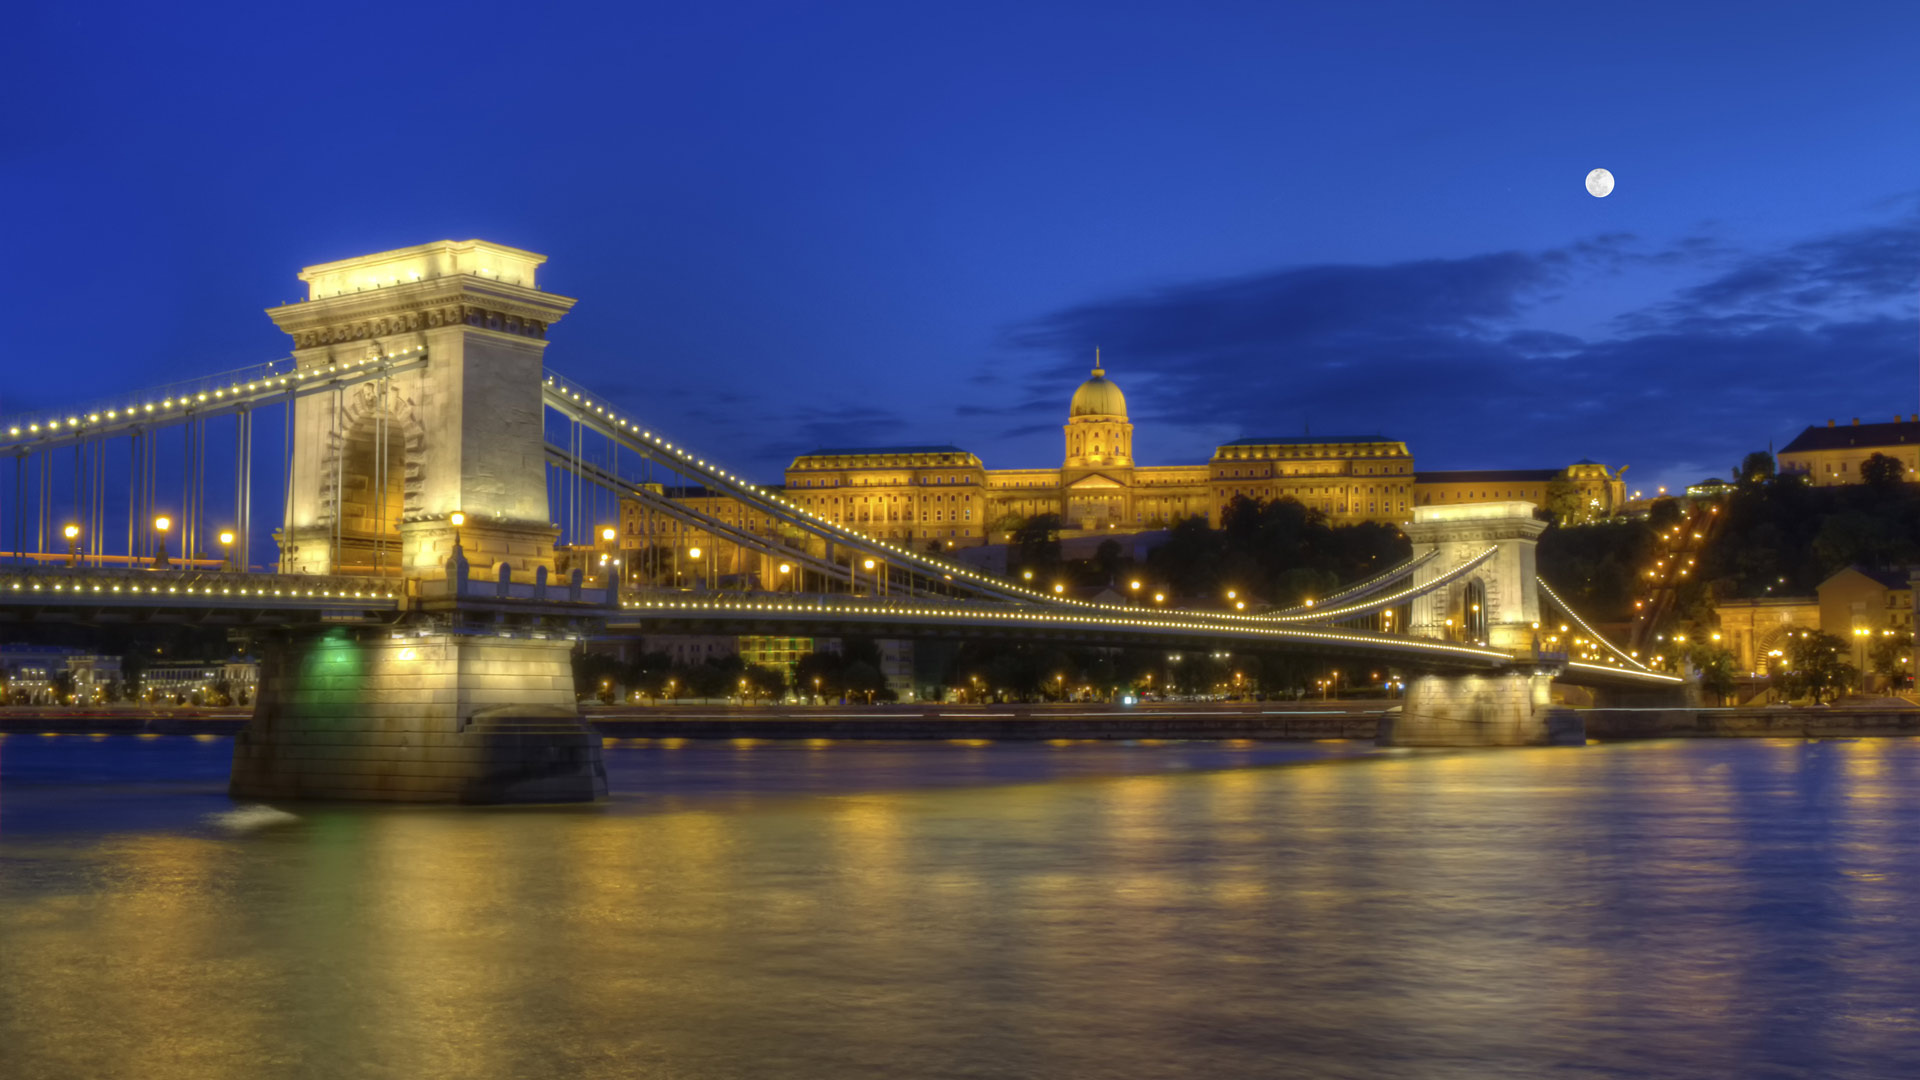 Chain Bridge, Royal Palace and Danube river in Budapest, Hungary, HDR